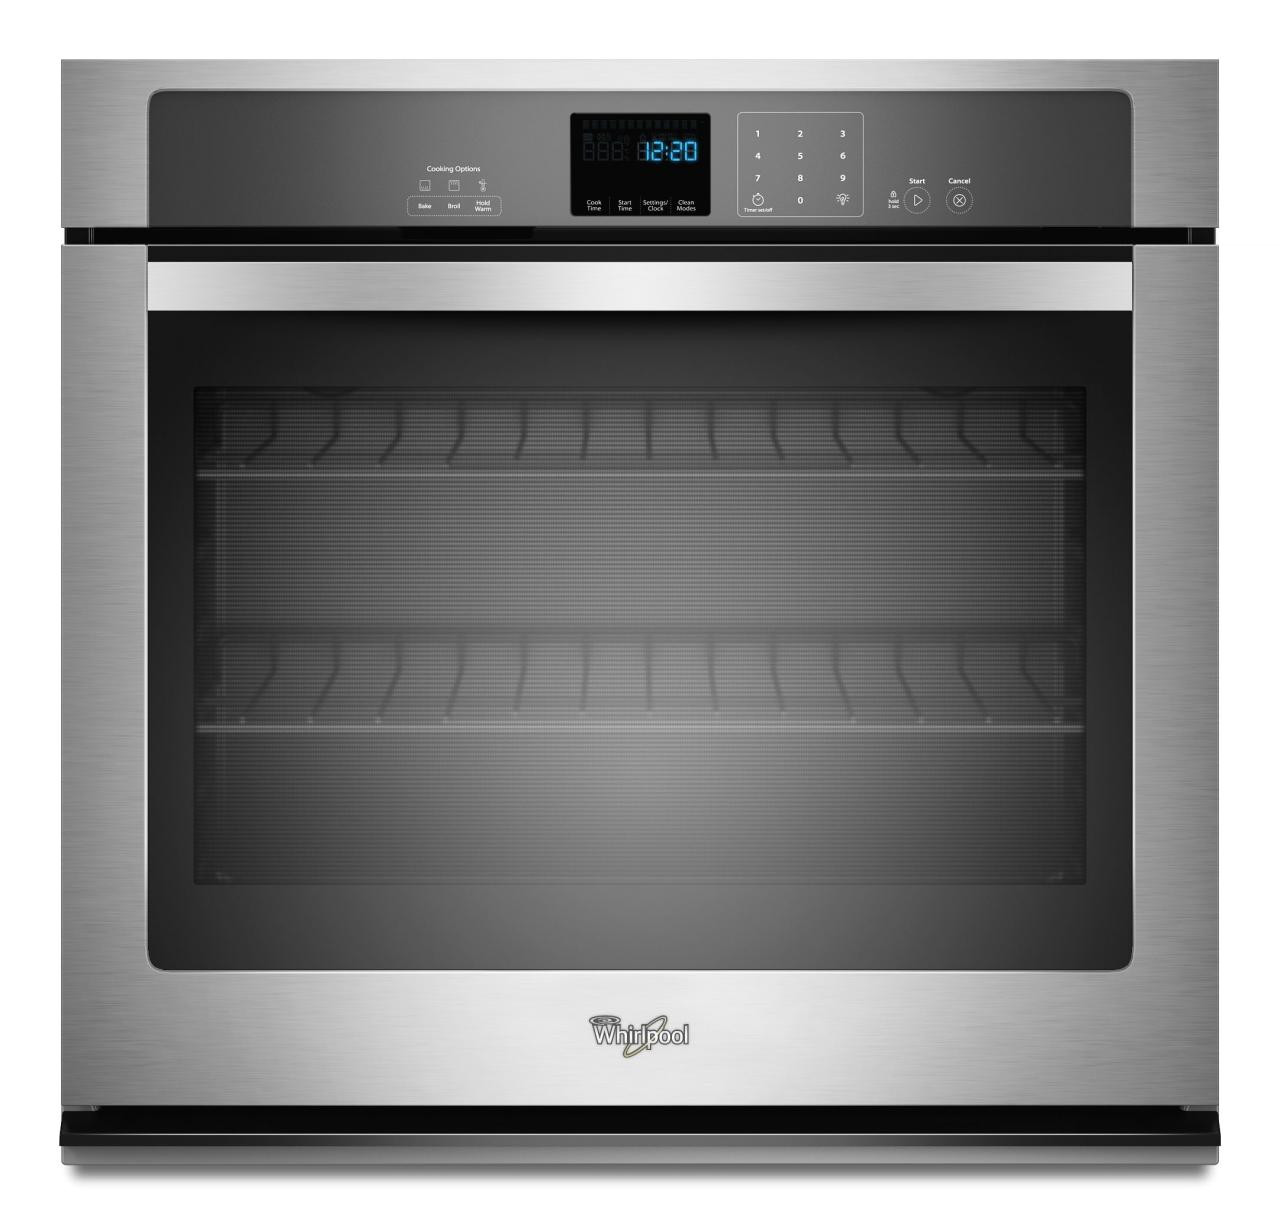 2 299 00 a whirlpoola 30 electric built in single oven stainless steel wos51ec0as whirlpool